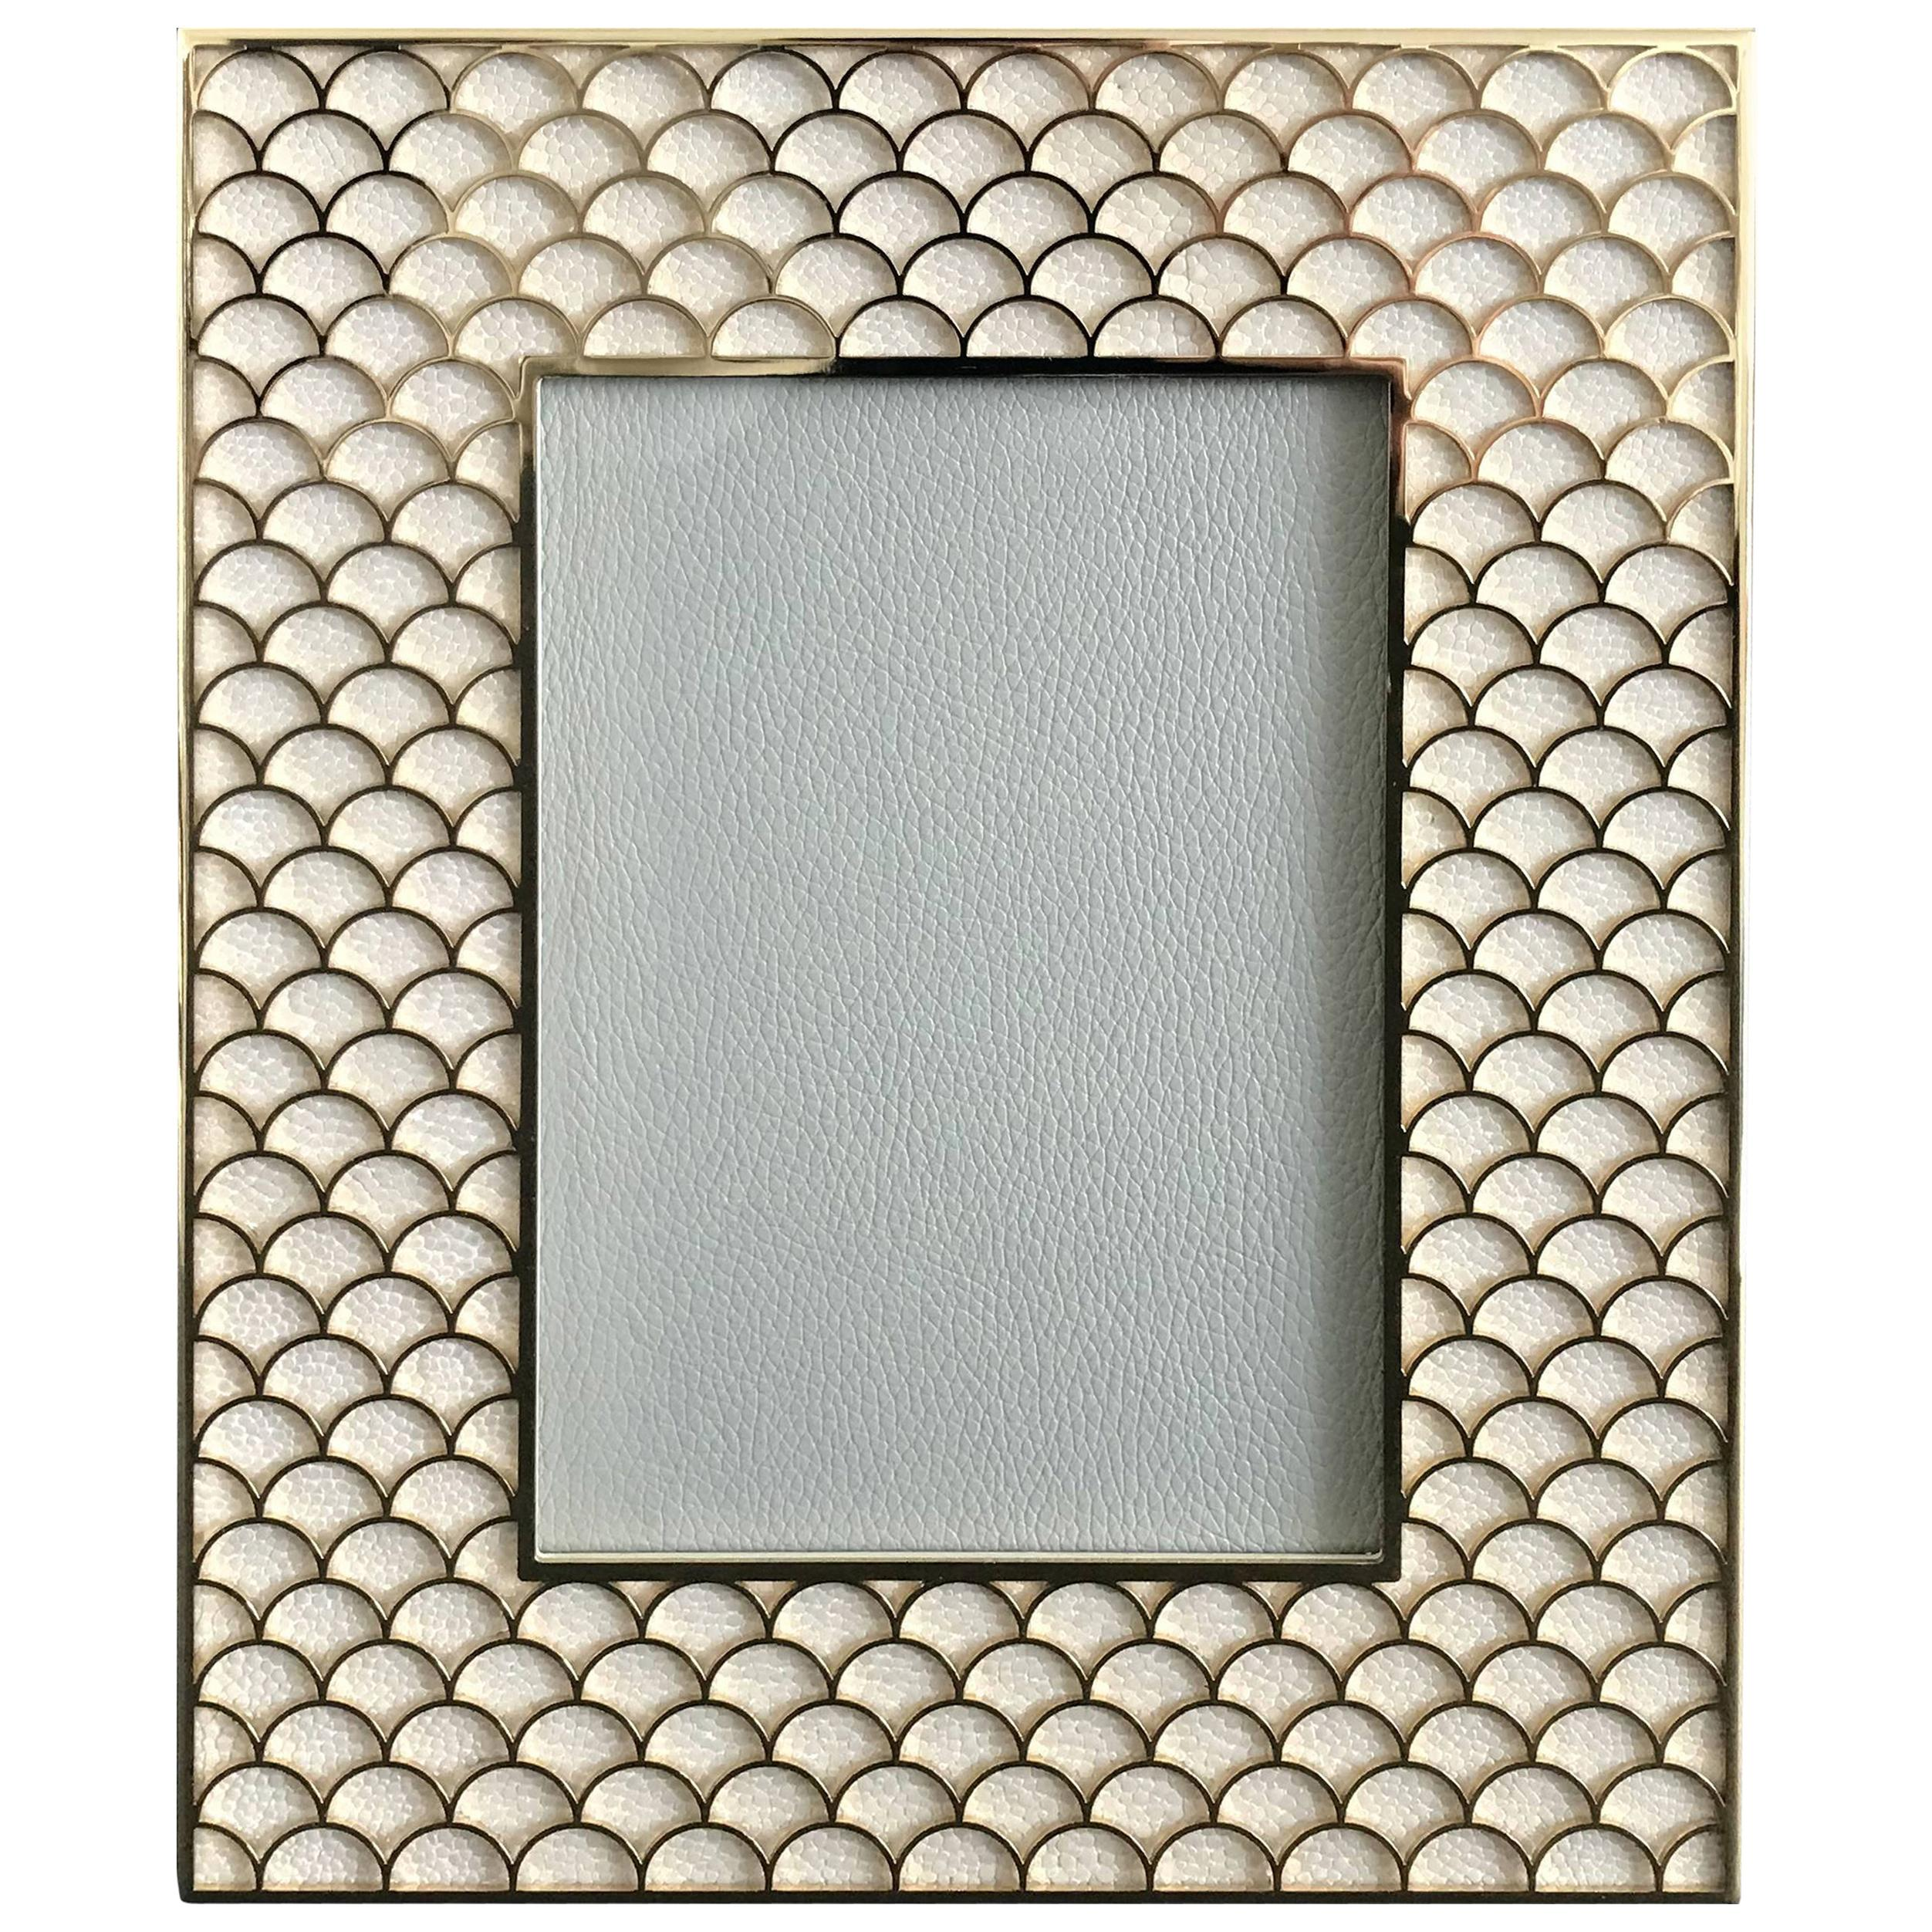 2e2a49c74dac Animal Skin Picture Frames - 60 For Sale at 1stdibs